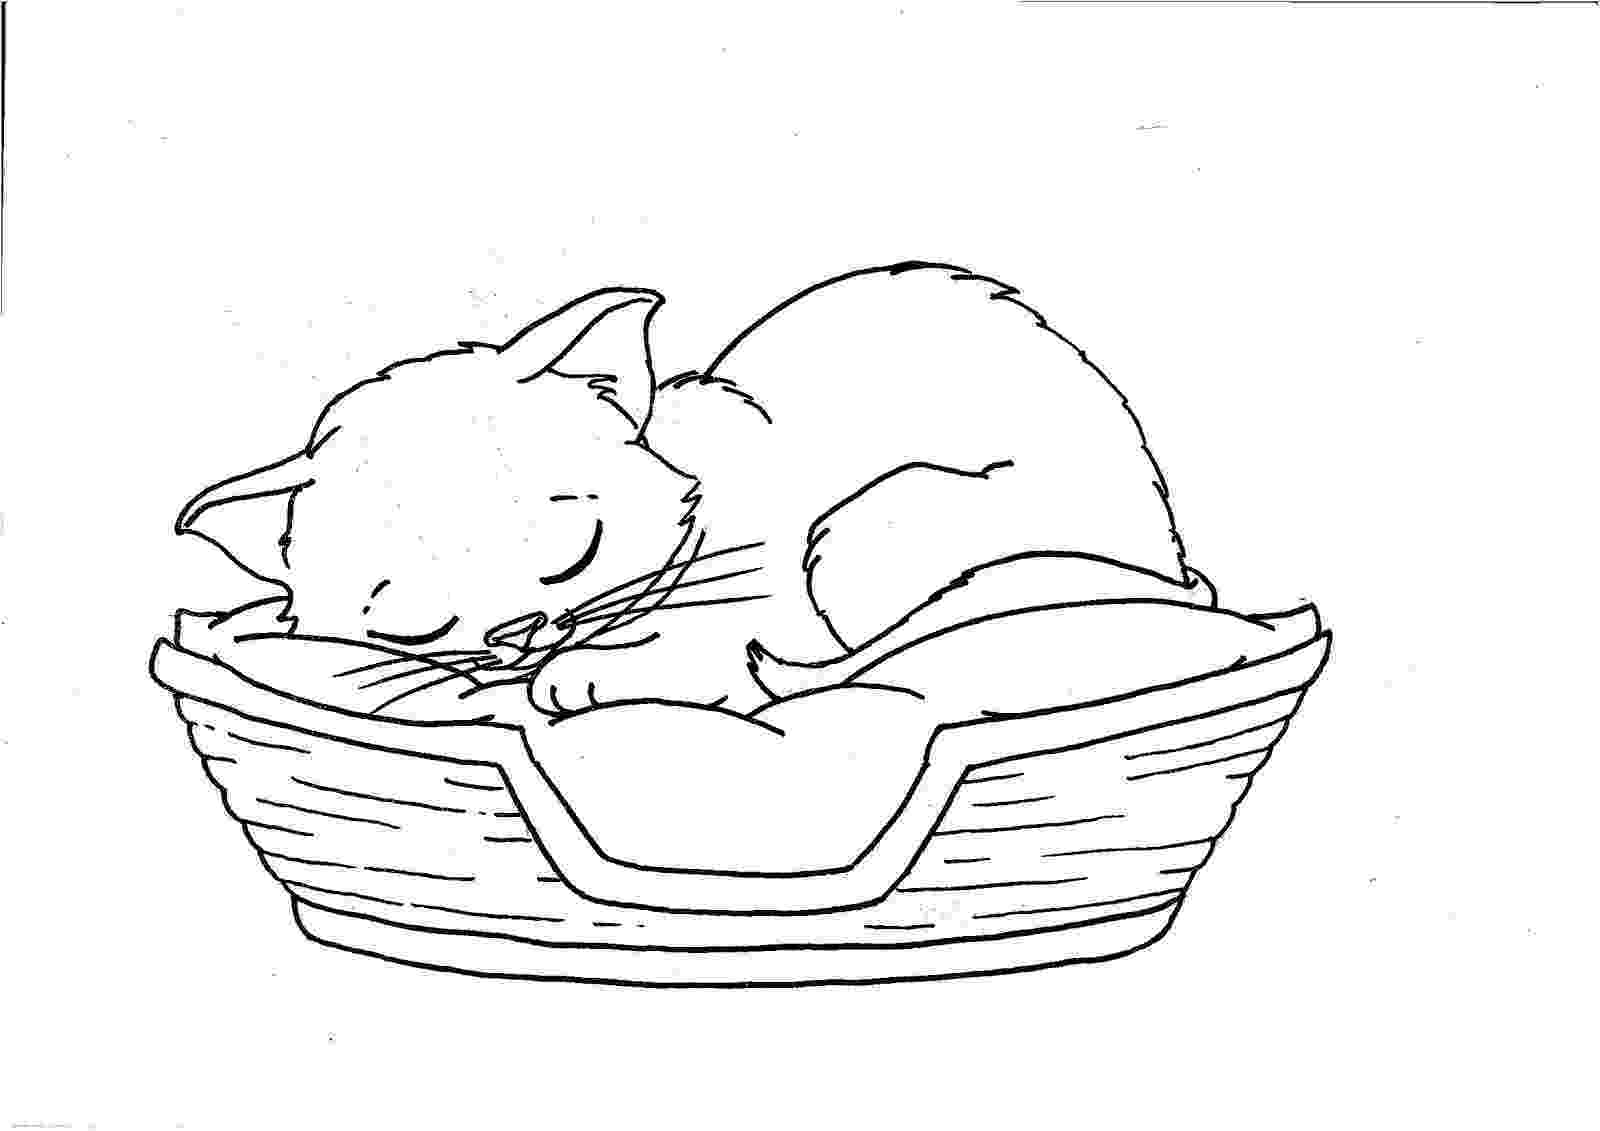 coloring pages of kittens to print cat coloring pages print kittens coloring to pages of